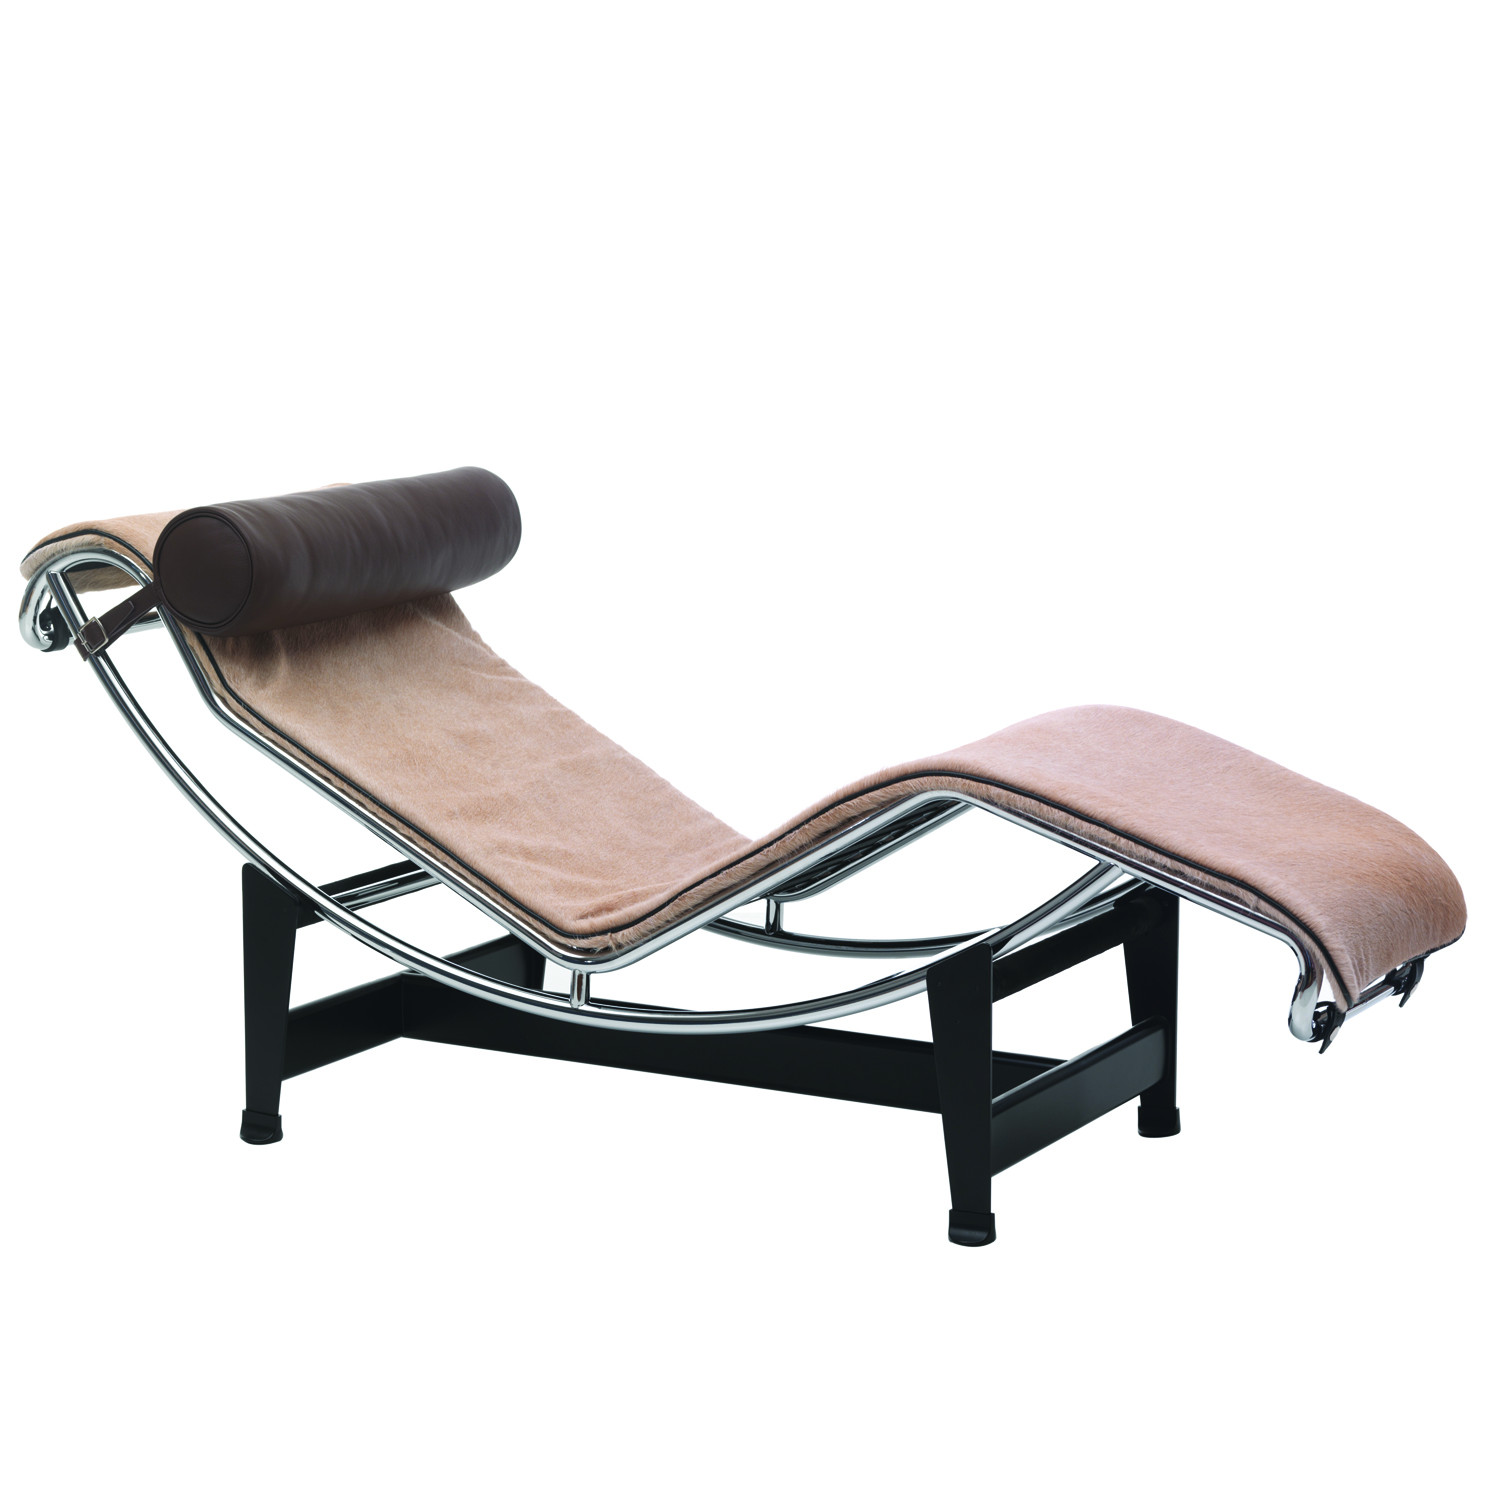 Lc4 chaise longue modern designer apres furniture for Chaise longue lc4 occasion